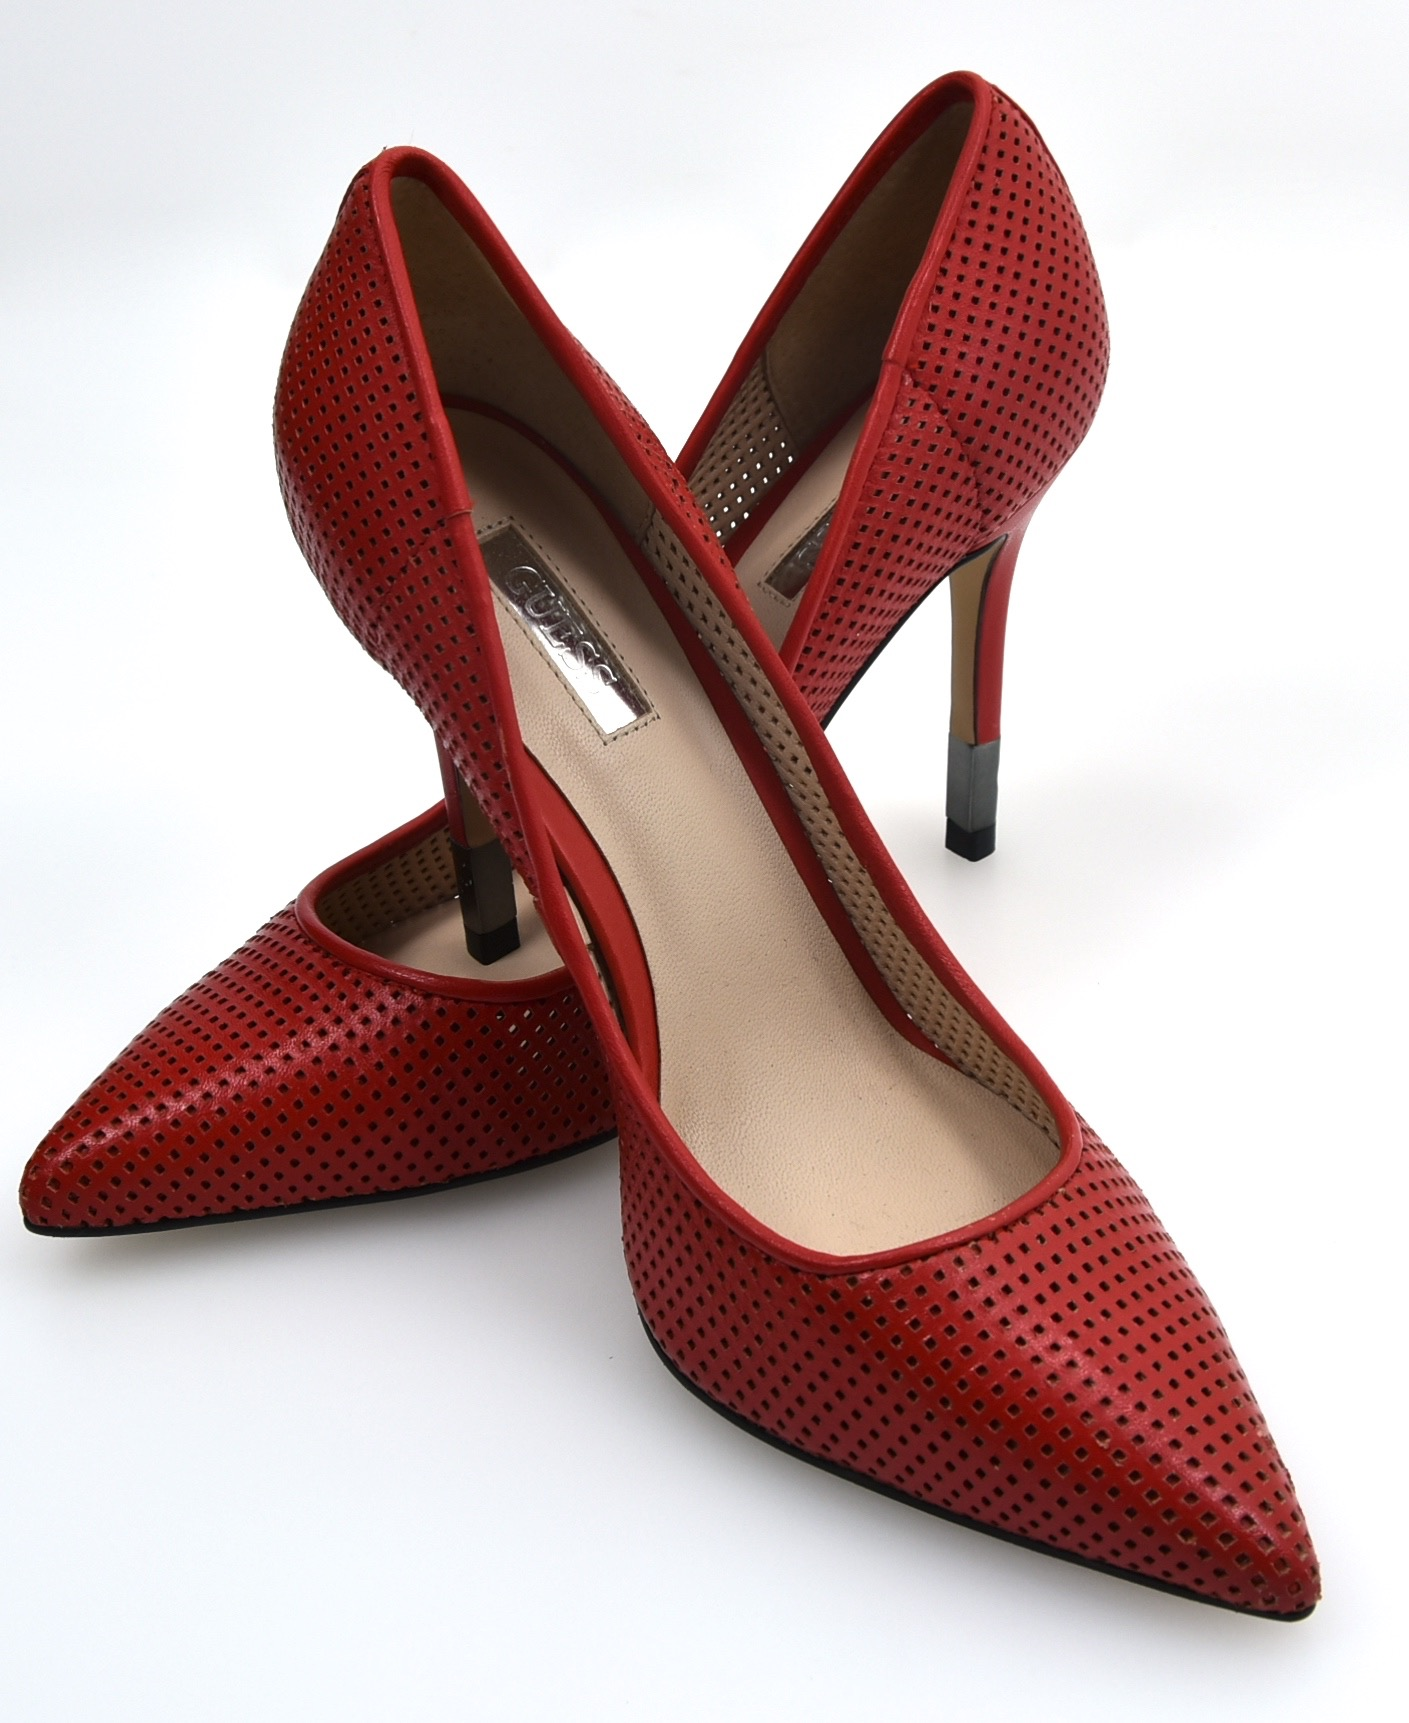 GUESS Damenschuhe HIGH PERFORATED HEELS PUMPS DECOLTE Schuhe PERFORATED HIGH LEATHER CODE FL2BYYLEA08 27784e